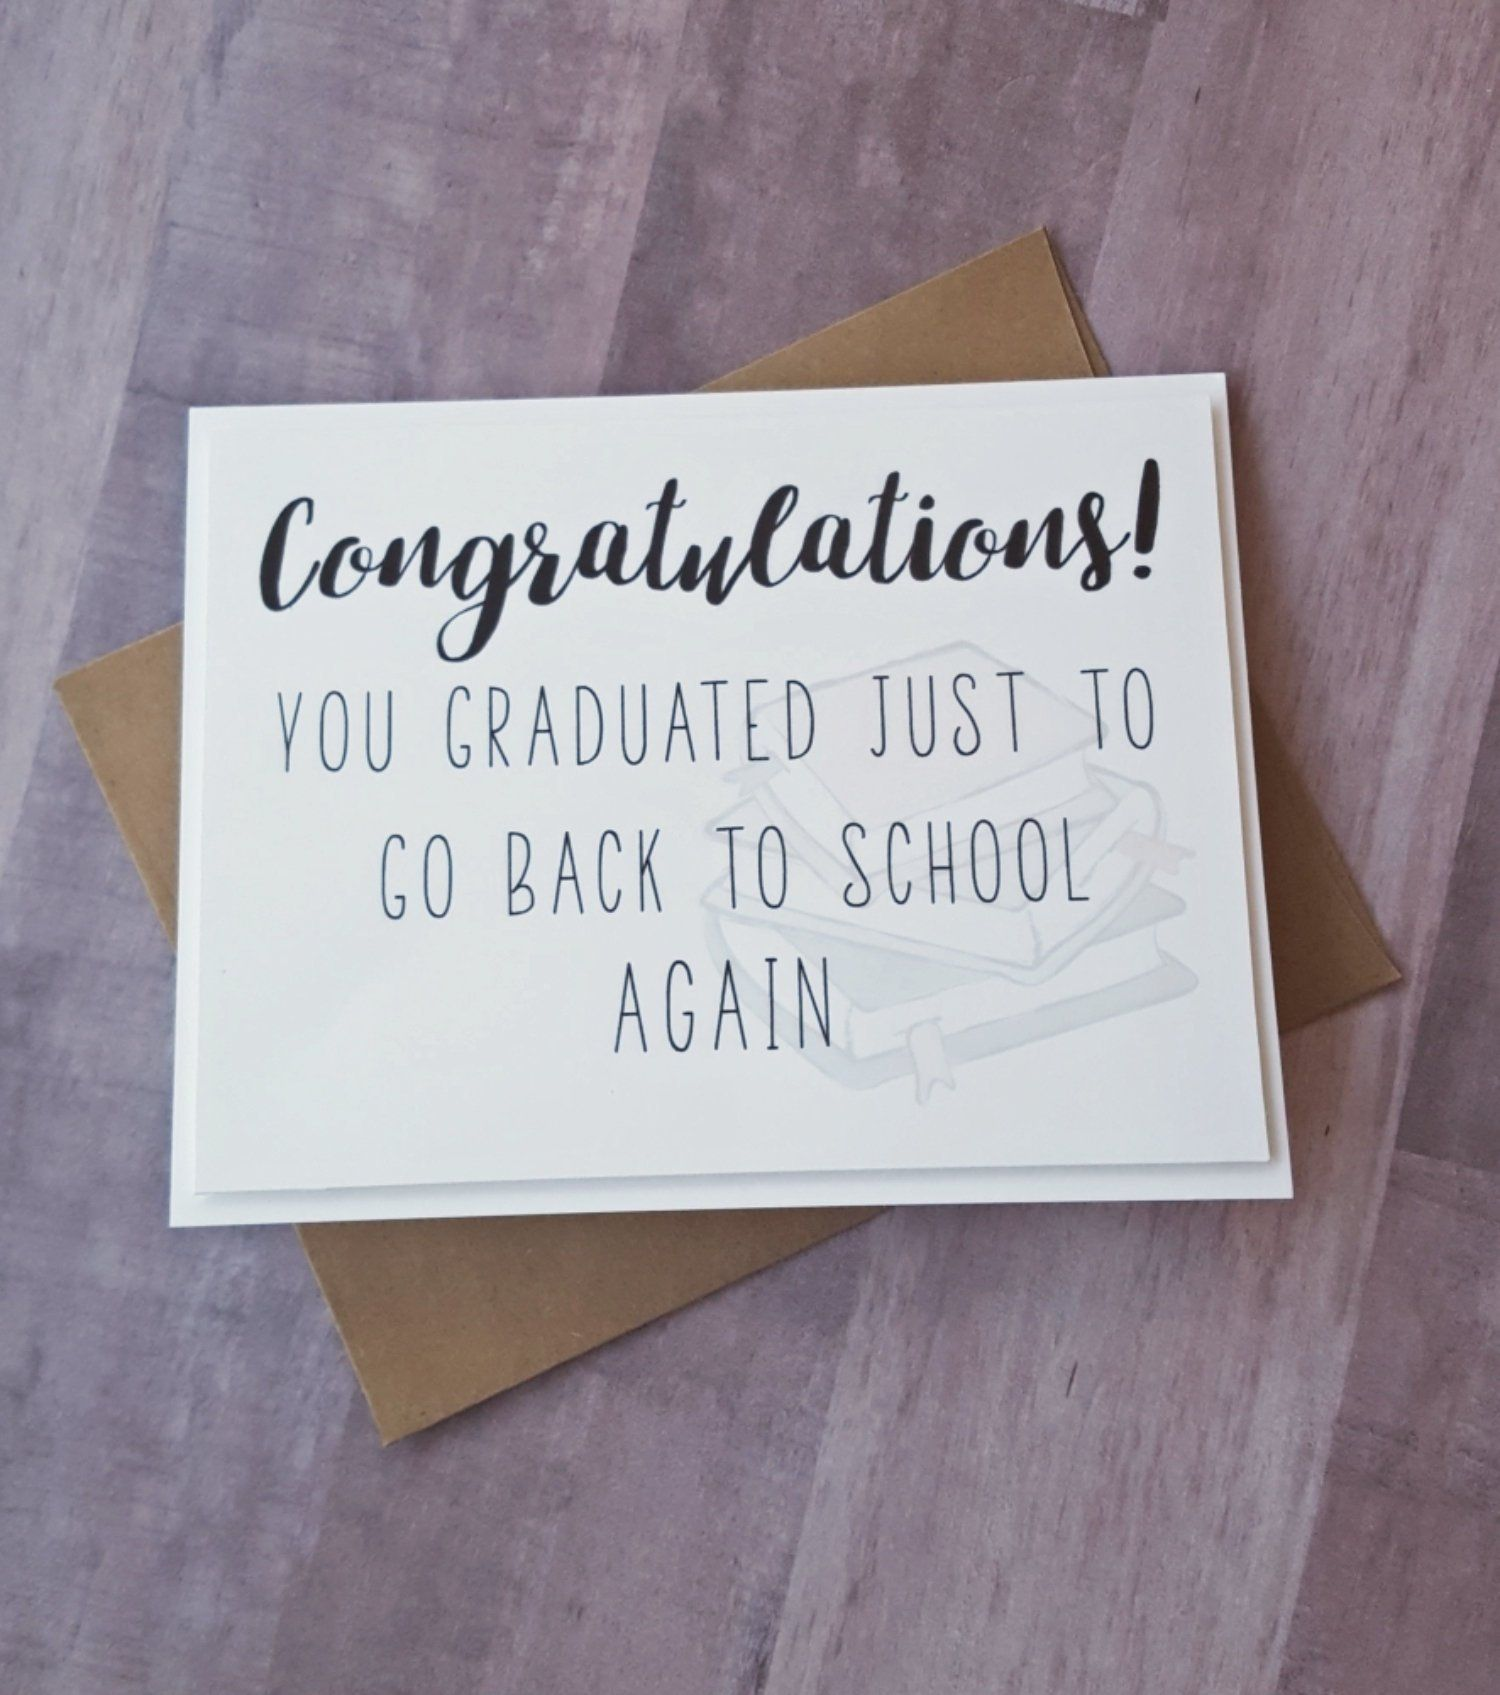 Thanks For The Kind Words Arrived Quick Nice Card Looks Like The Picture Co Congratulations Graduate Graduation Card Sayings Funny Graduation Cards